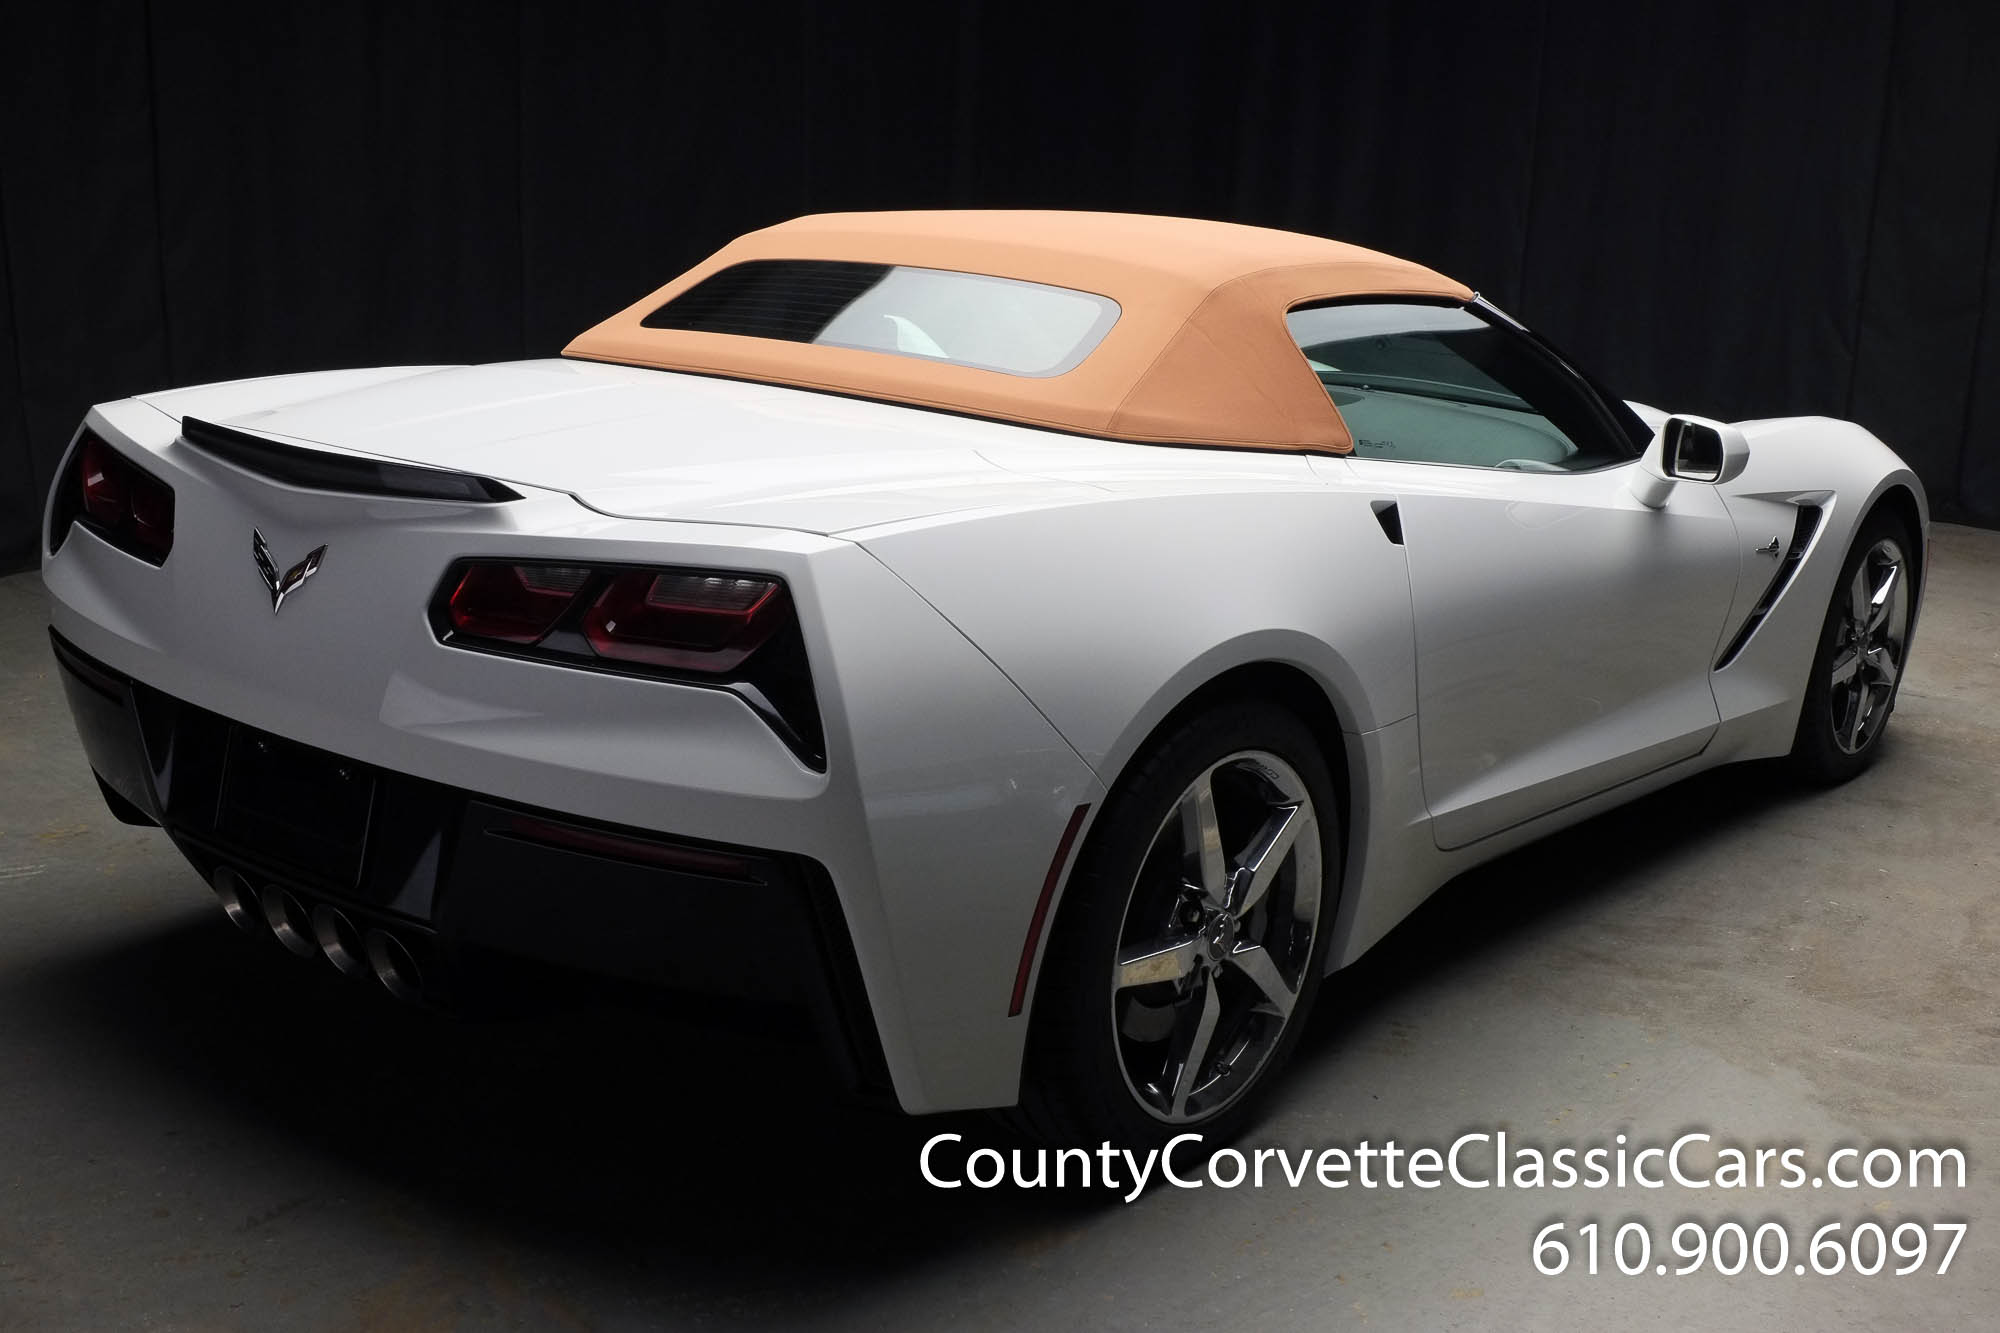 2014-Corvette-Stingray-Convertible-26.jpg